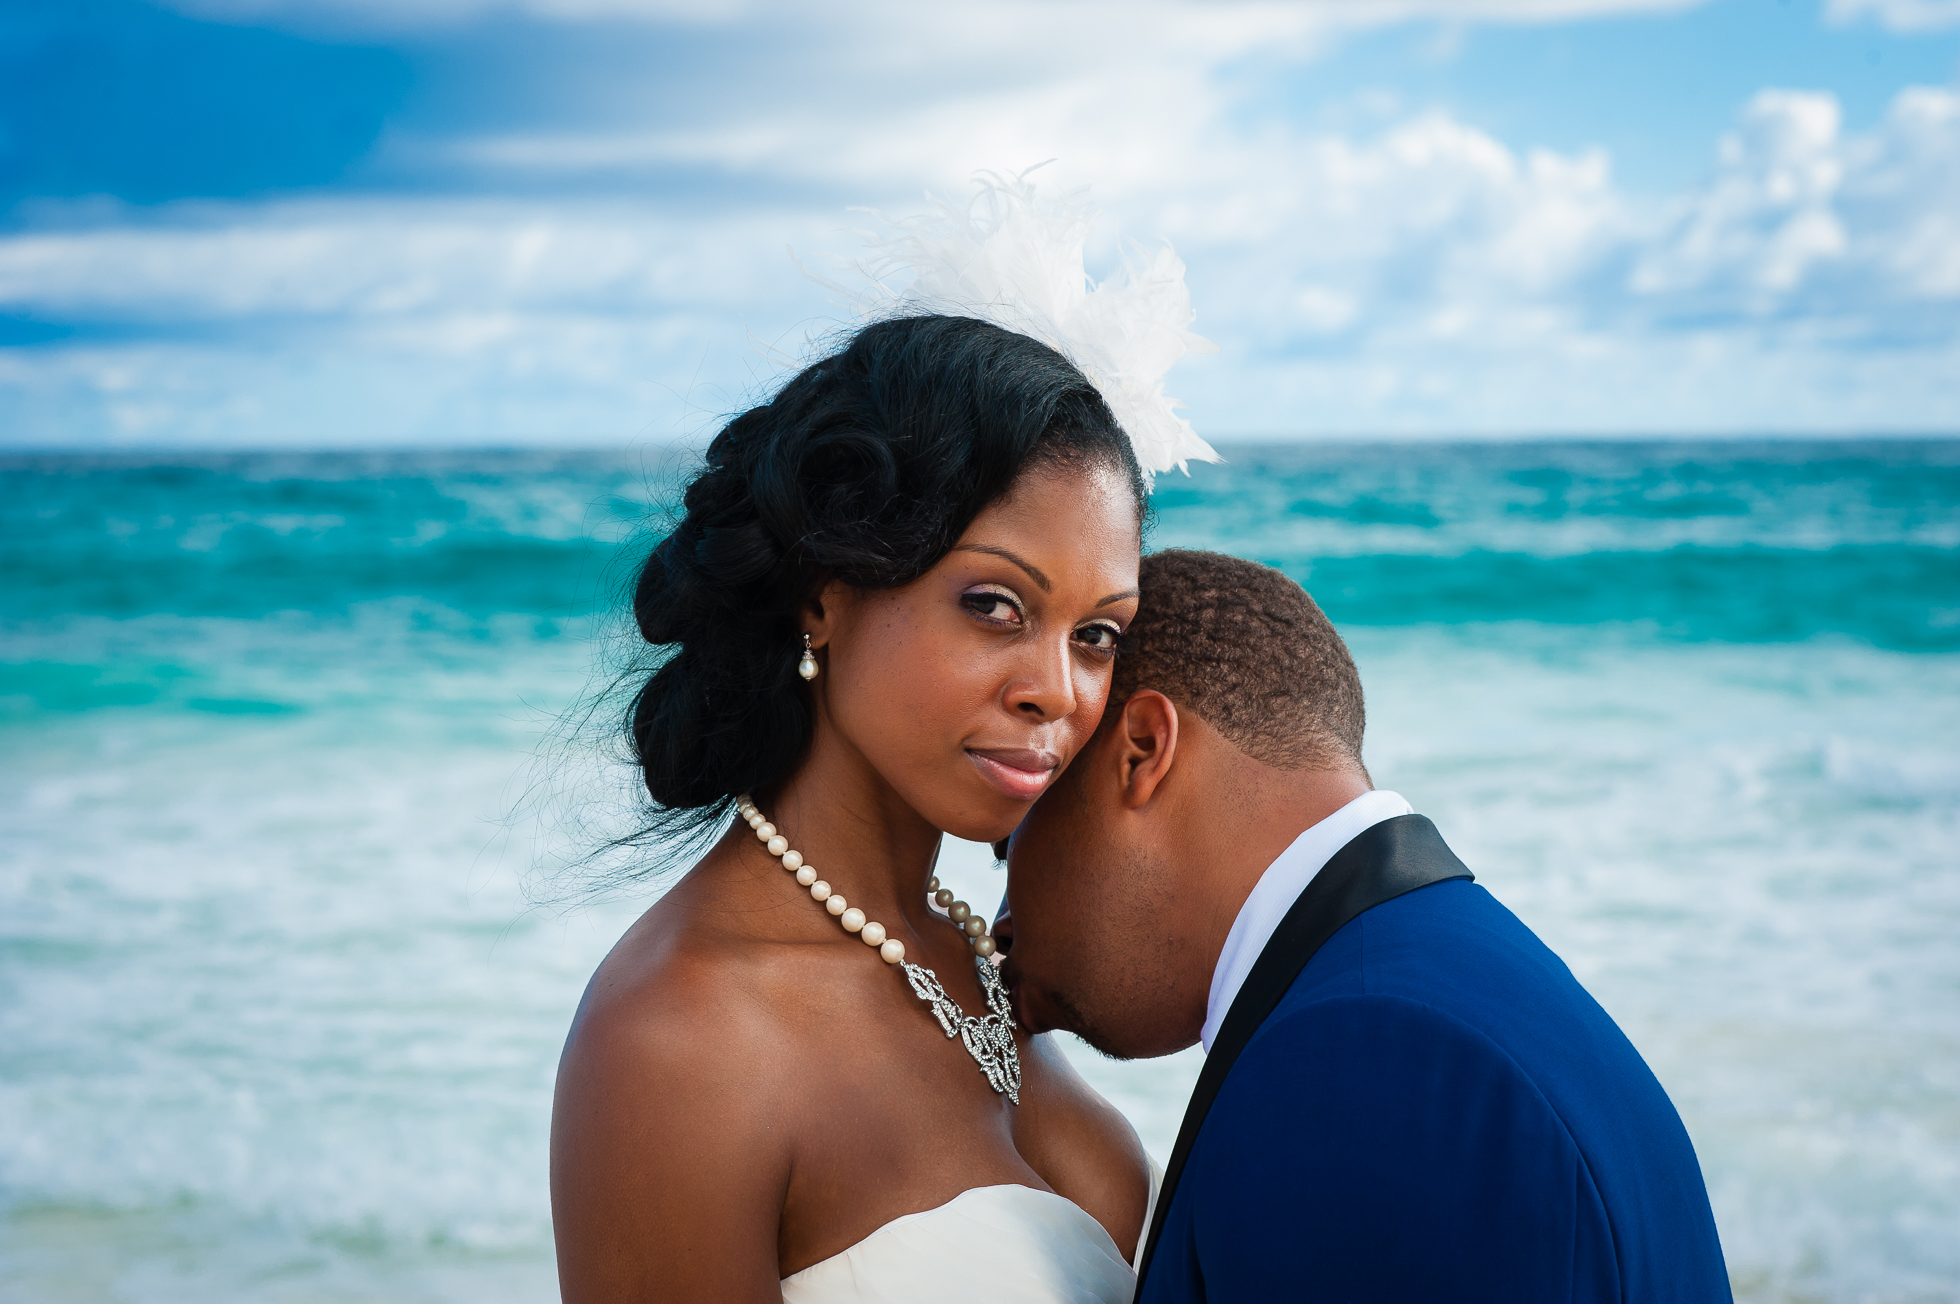 hard rock punta cana wedding portrait